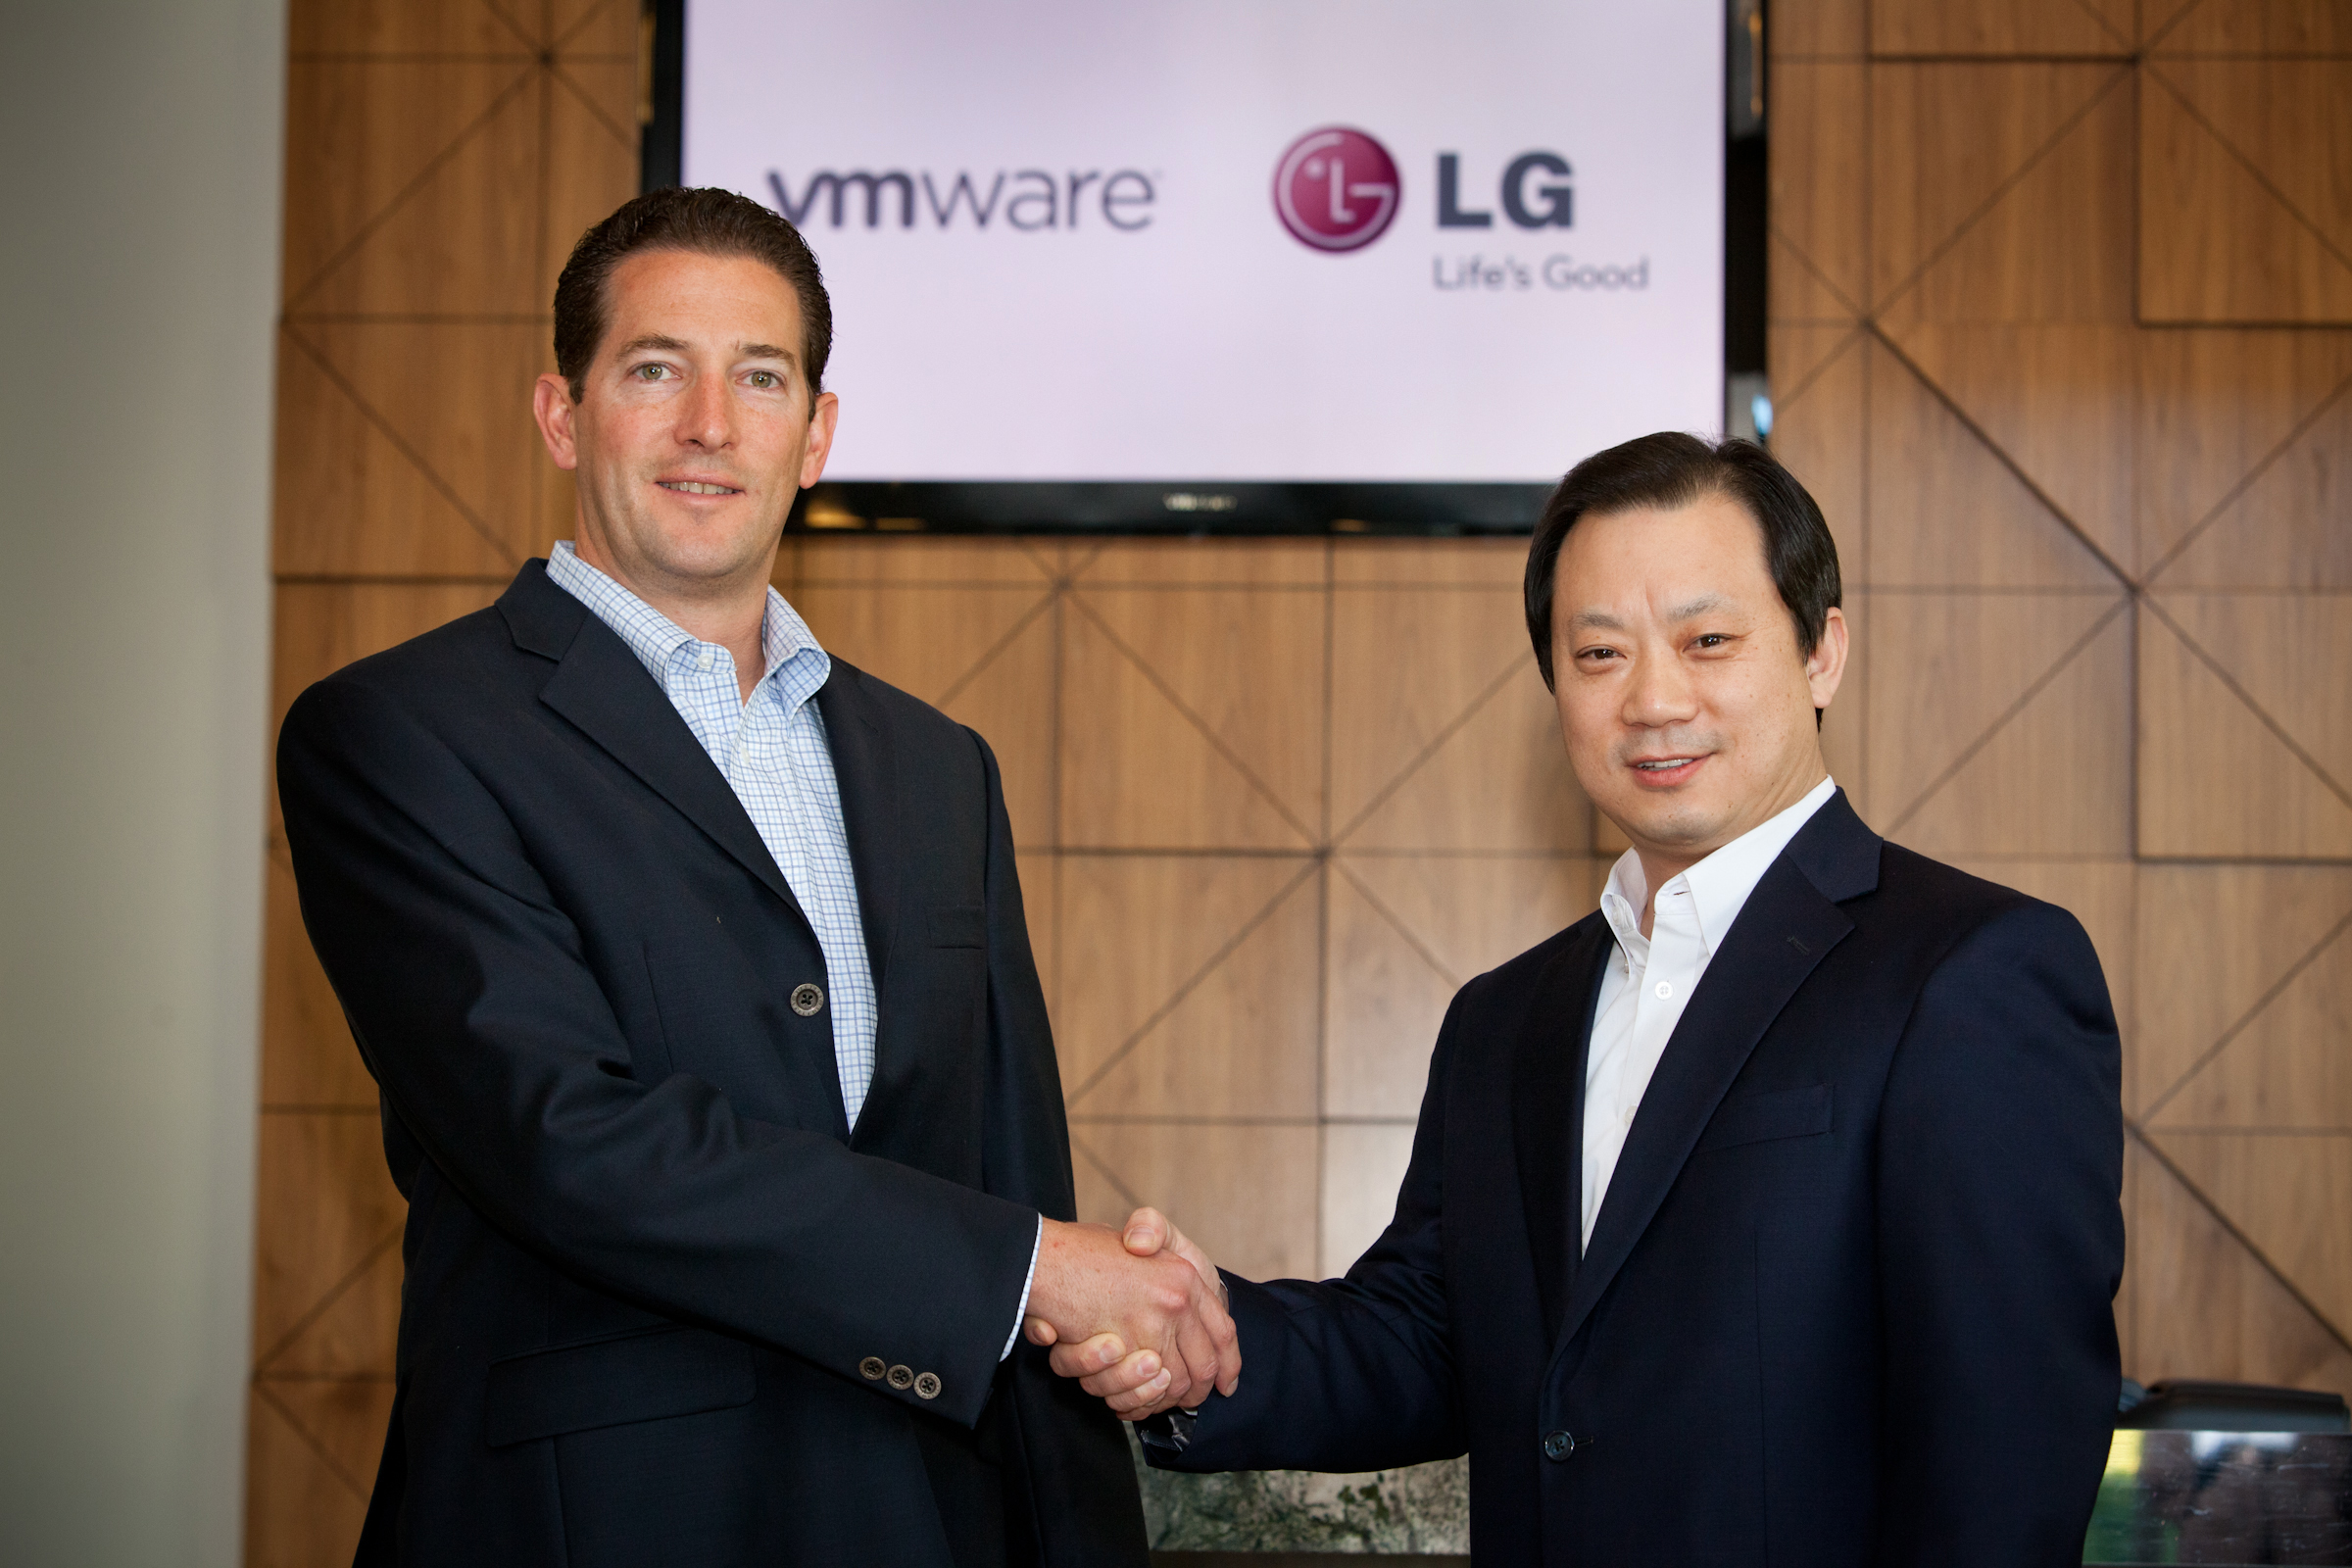 Dr. Stephen Herrod, CTO and senior vice president of R&D at VMware, shaking hands with Ki S. Kim, vice president of Global Enterprise Solutions at LG Electronics Mobile Communications Company.